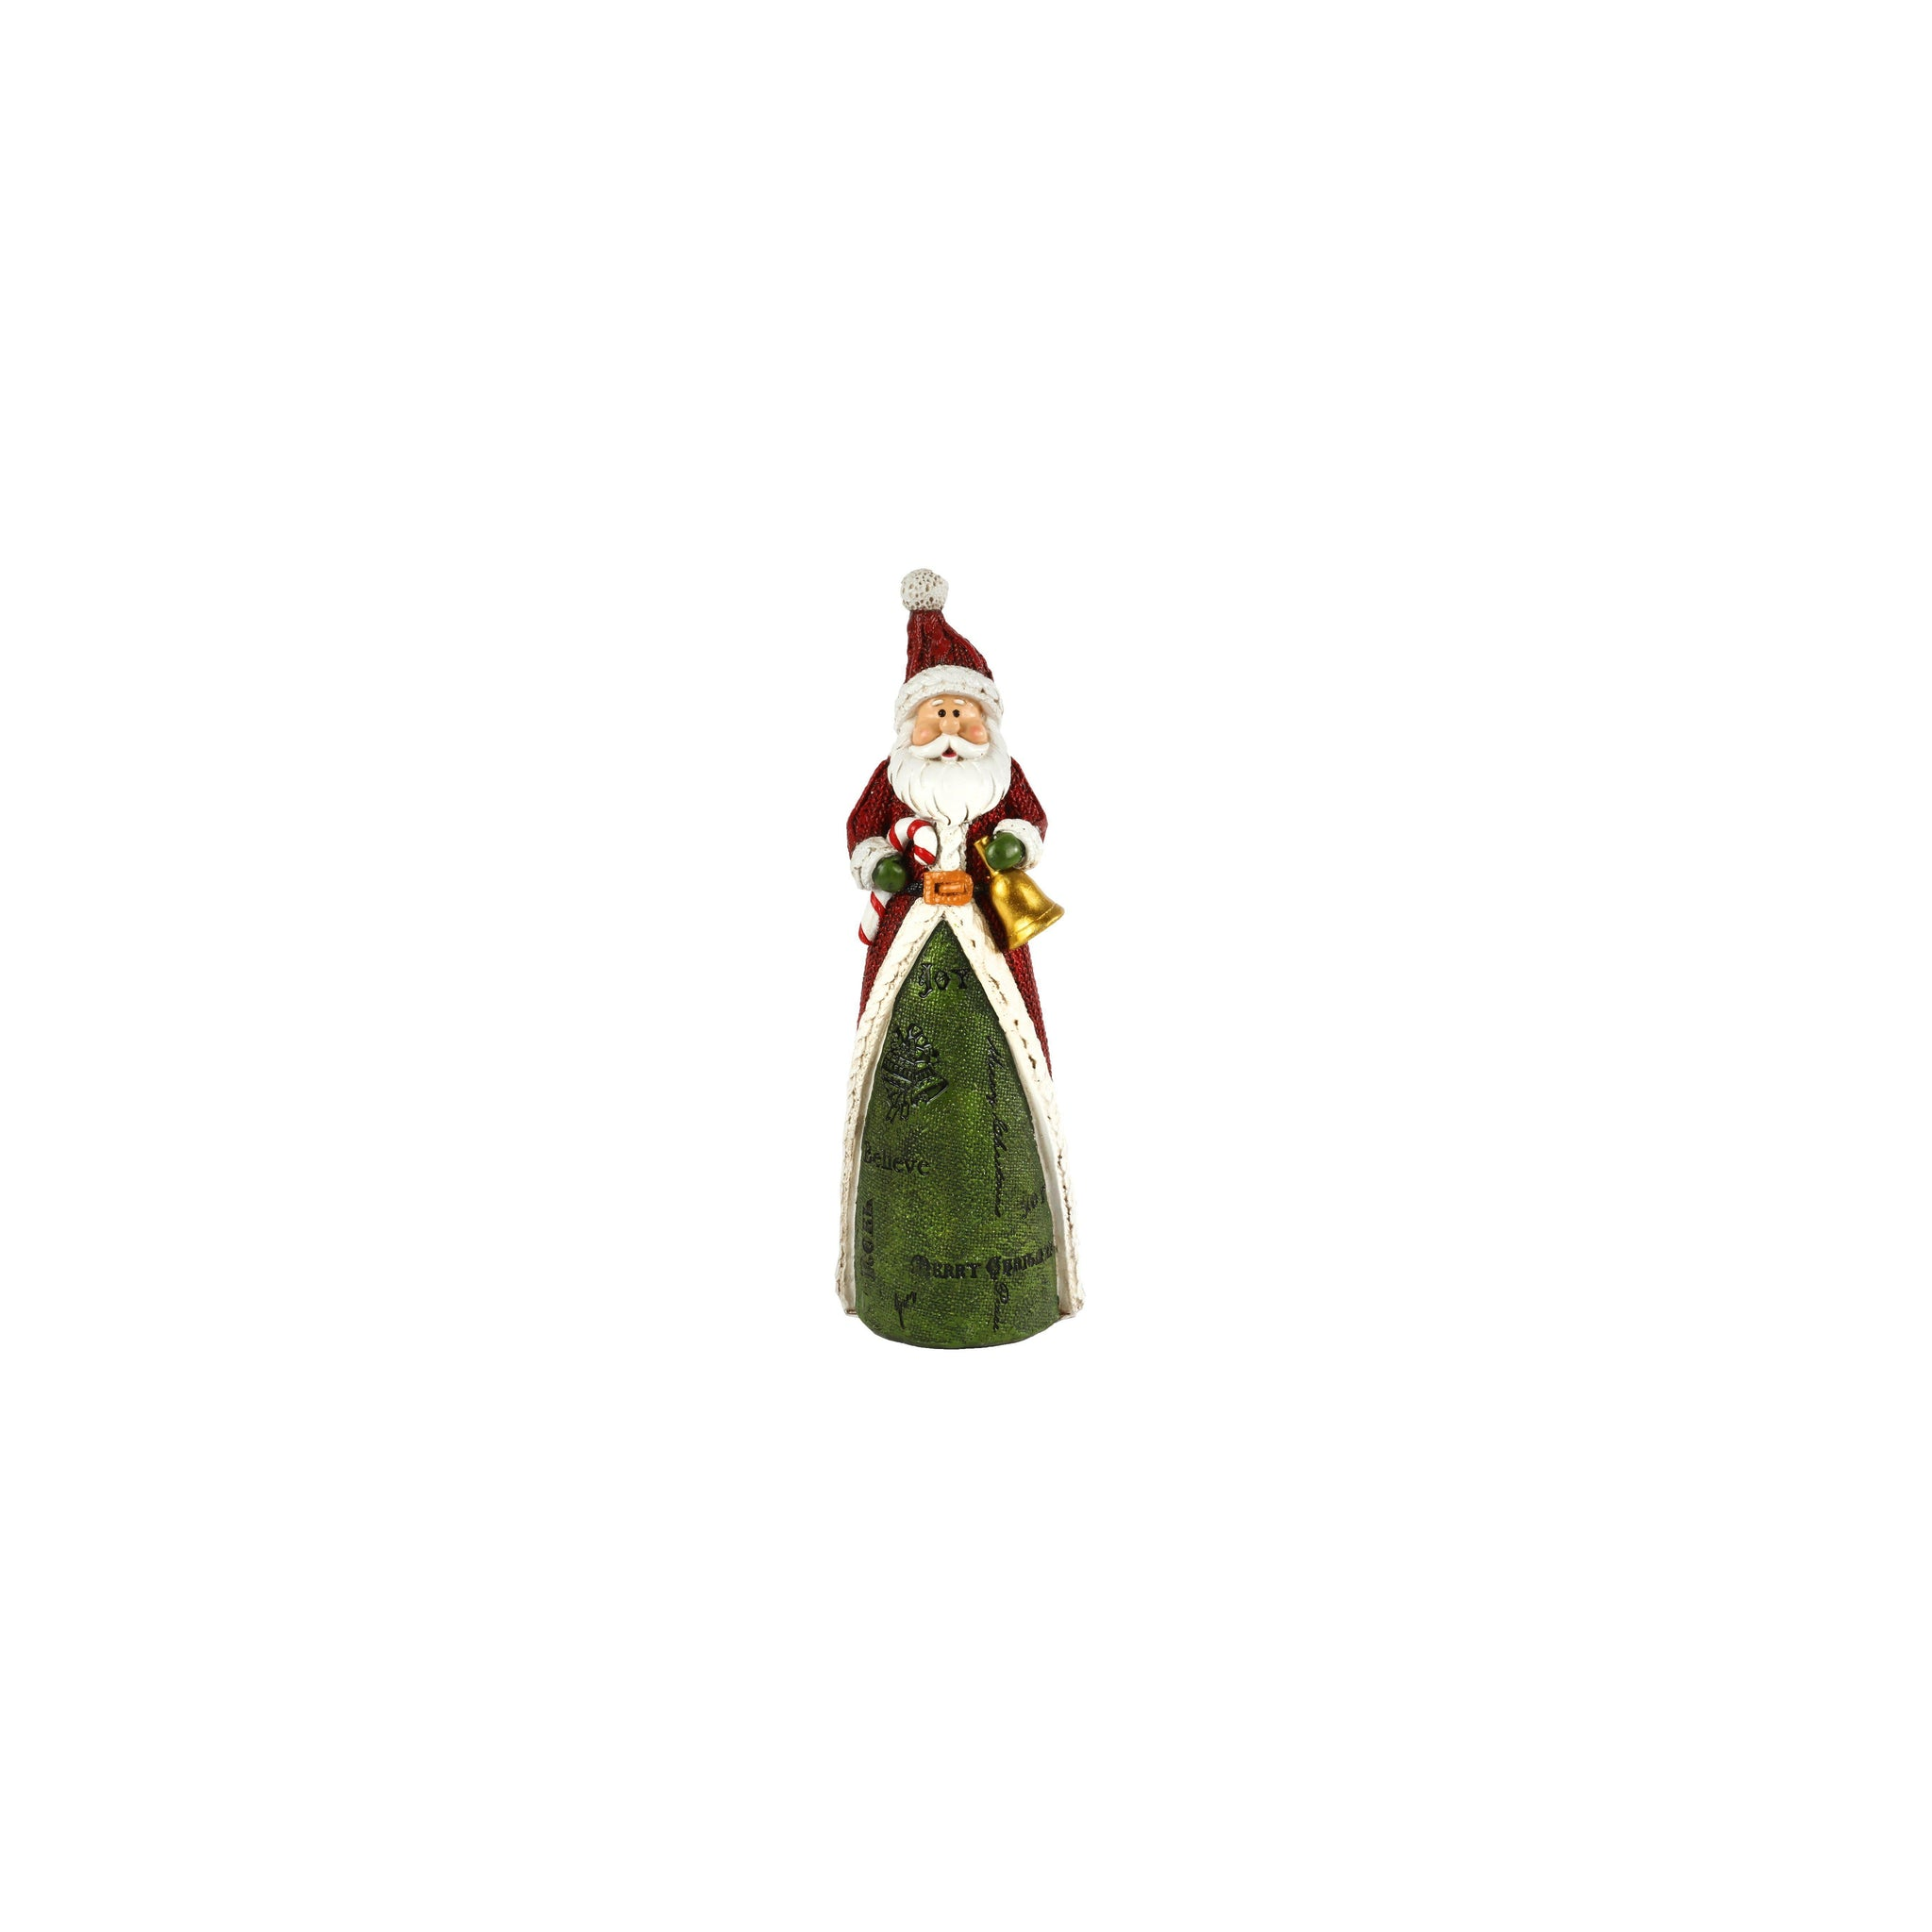 Santa Figure Decoration-Christmas Decoration-Mercer-Thursford Enterprises Ltd.